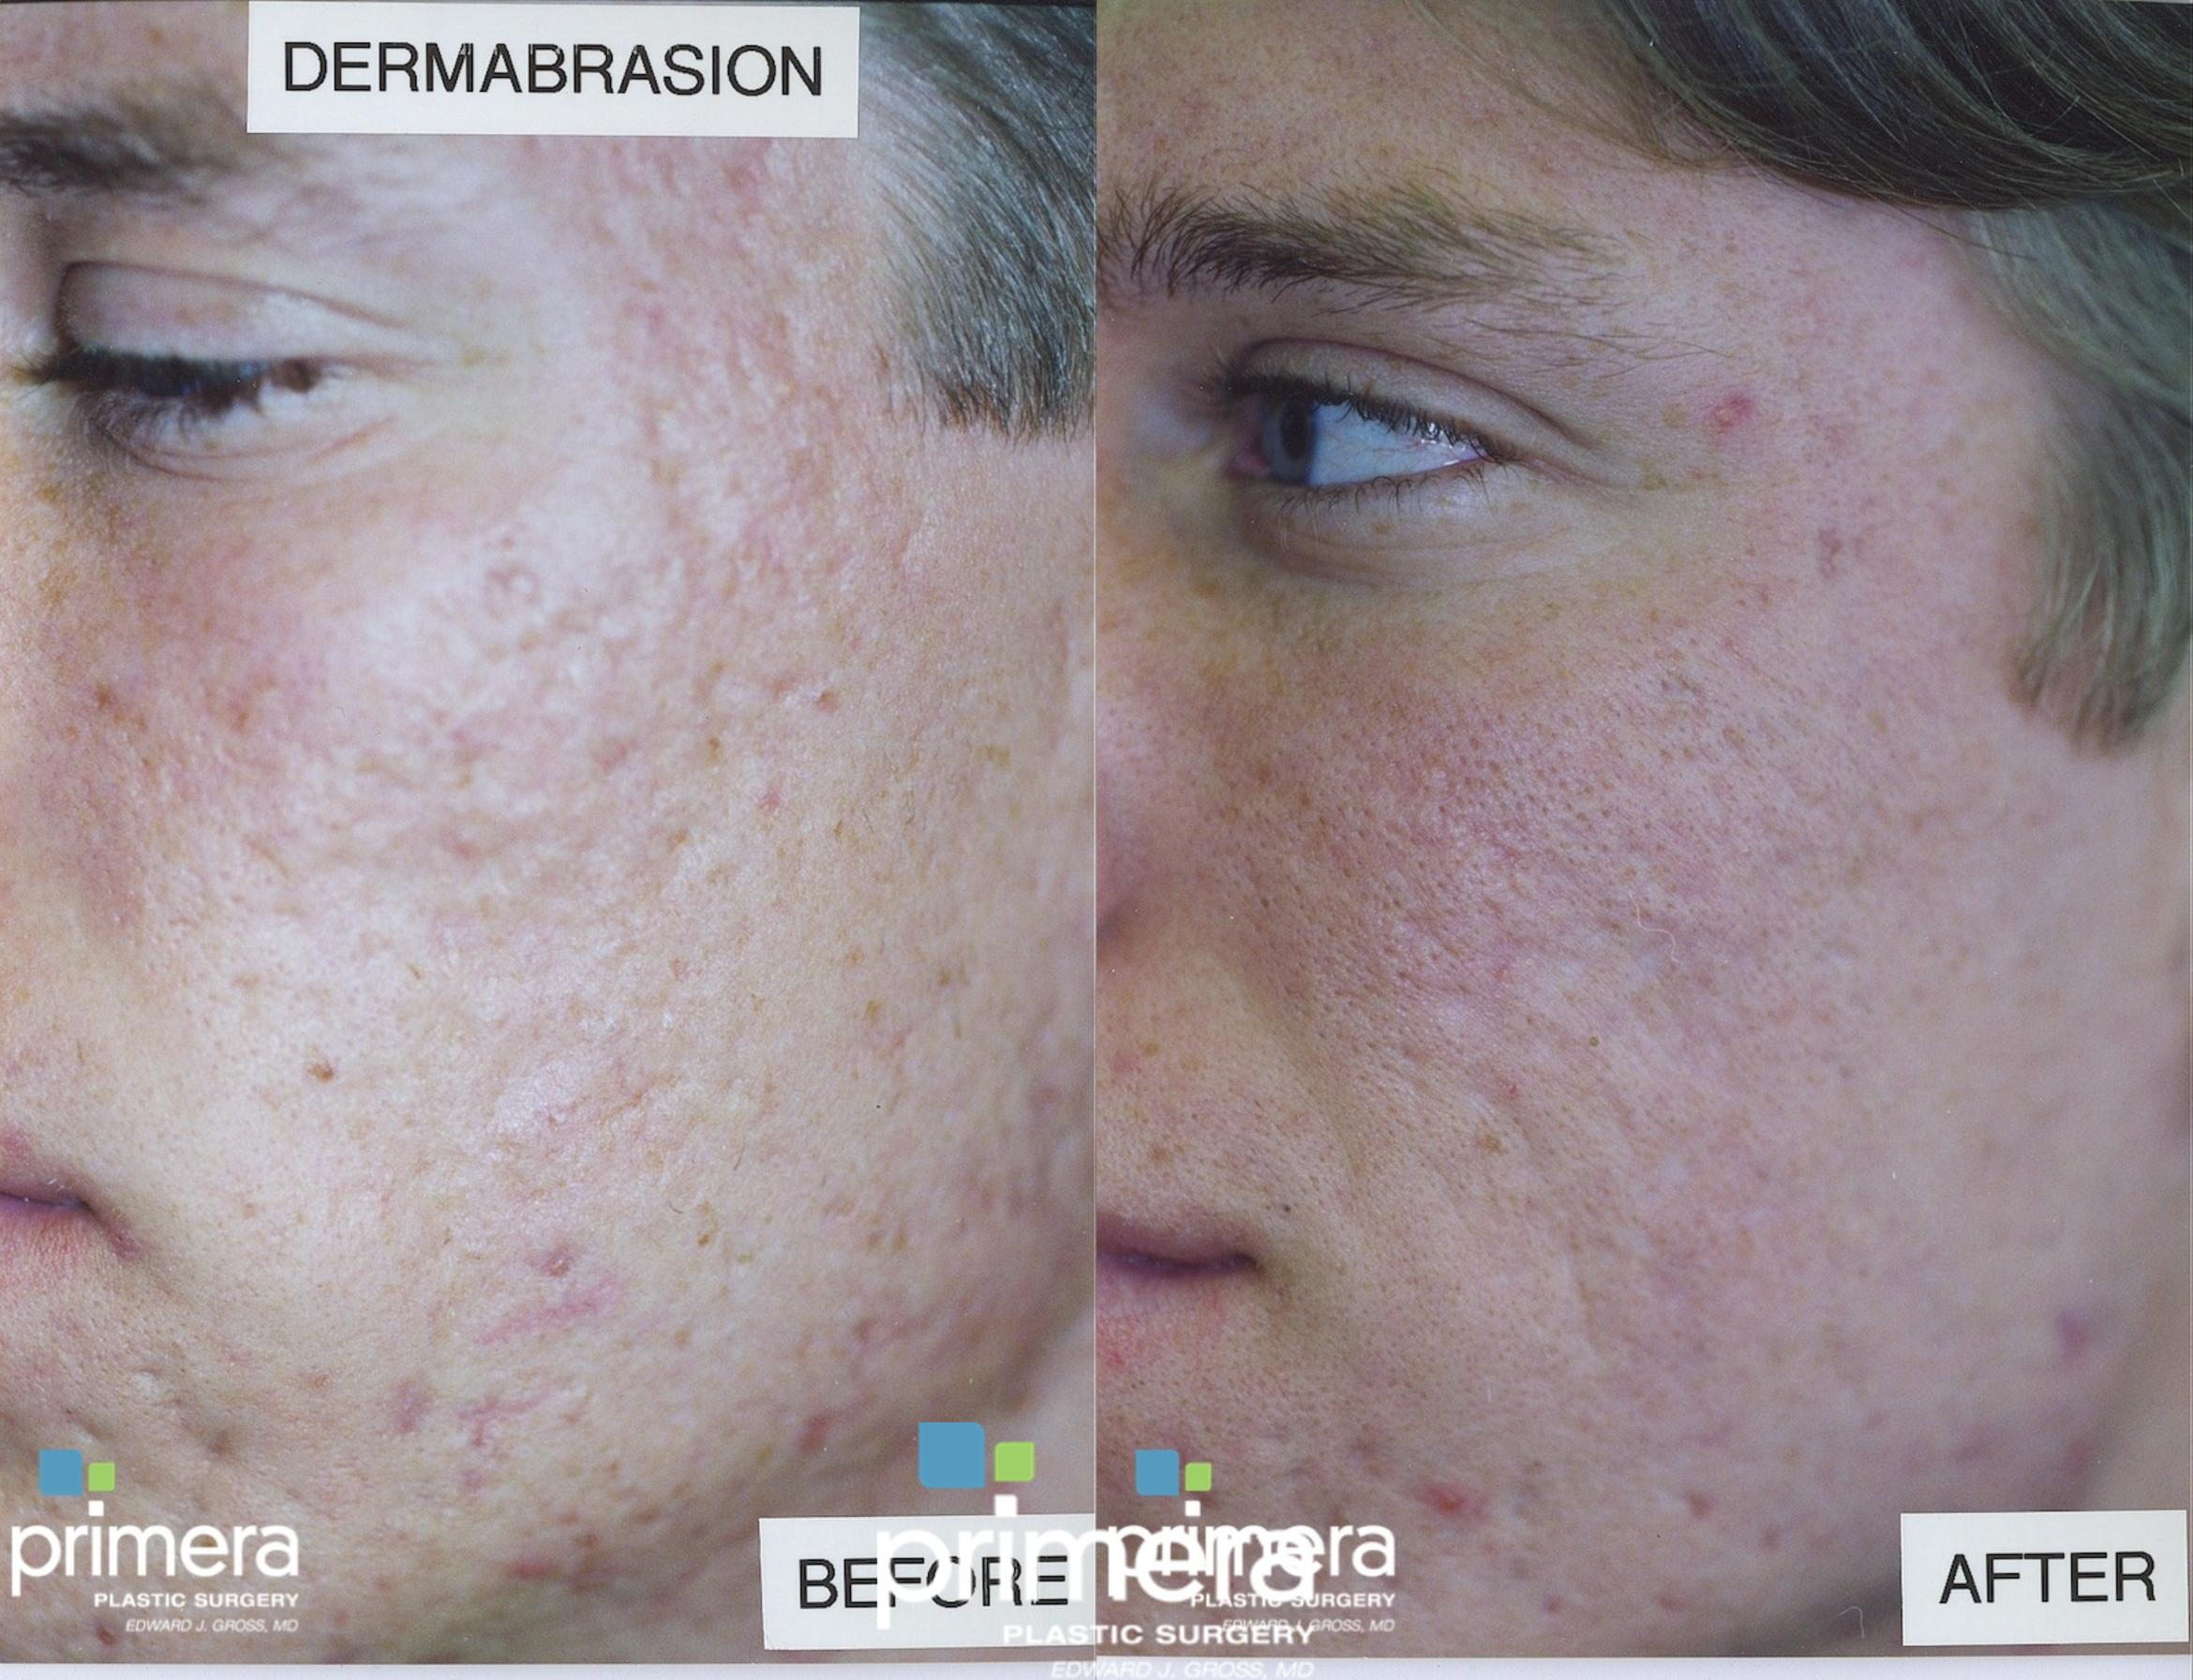 Dermabrasion Before & After Photo | Orlando, Florida | Primera Plastic Surgery